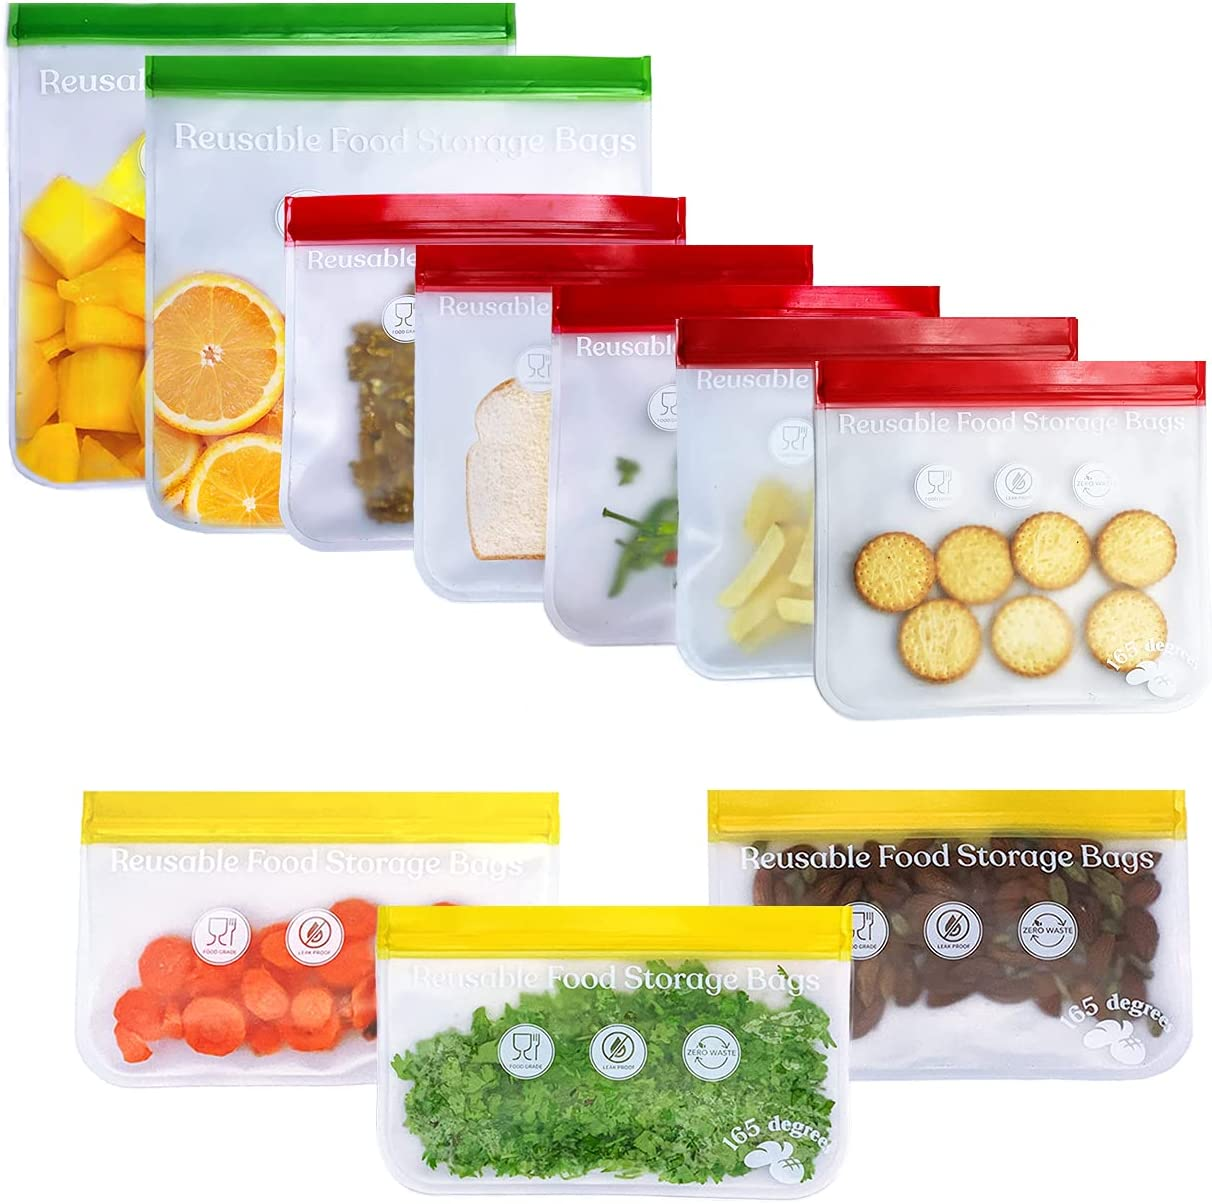 165 Degrees Reusable Silicone Bags, Leakproof Reusable Bags for Food, 10 Pack Reusable Freezer Food Storage Double lock Zipper Bags (5 Reusable Sandwich Bags Red, 3 Reusable Snack Bags Yellow & 2 Reusable Gallon Bags Green)